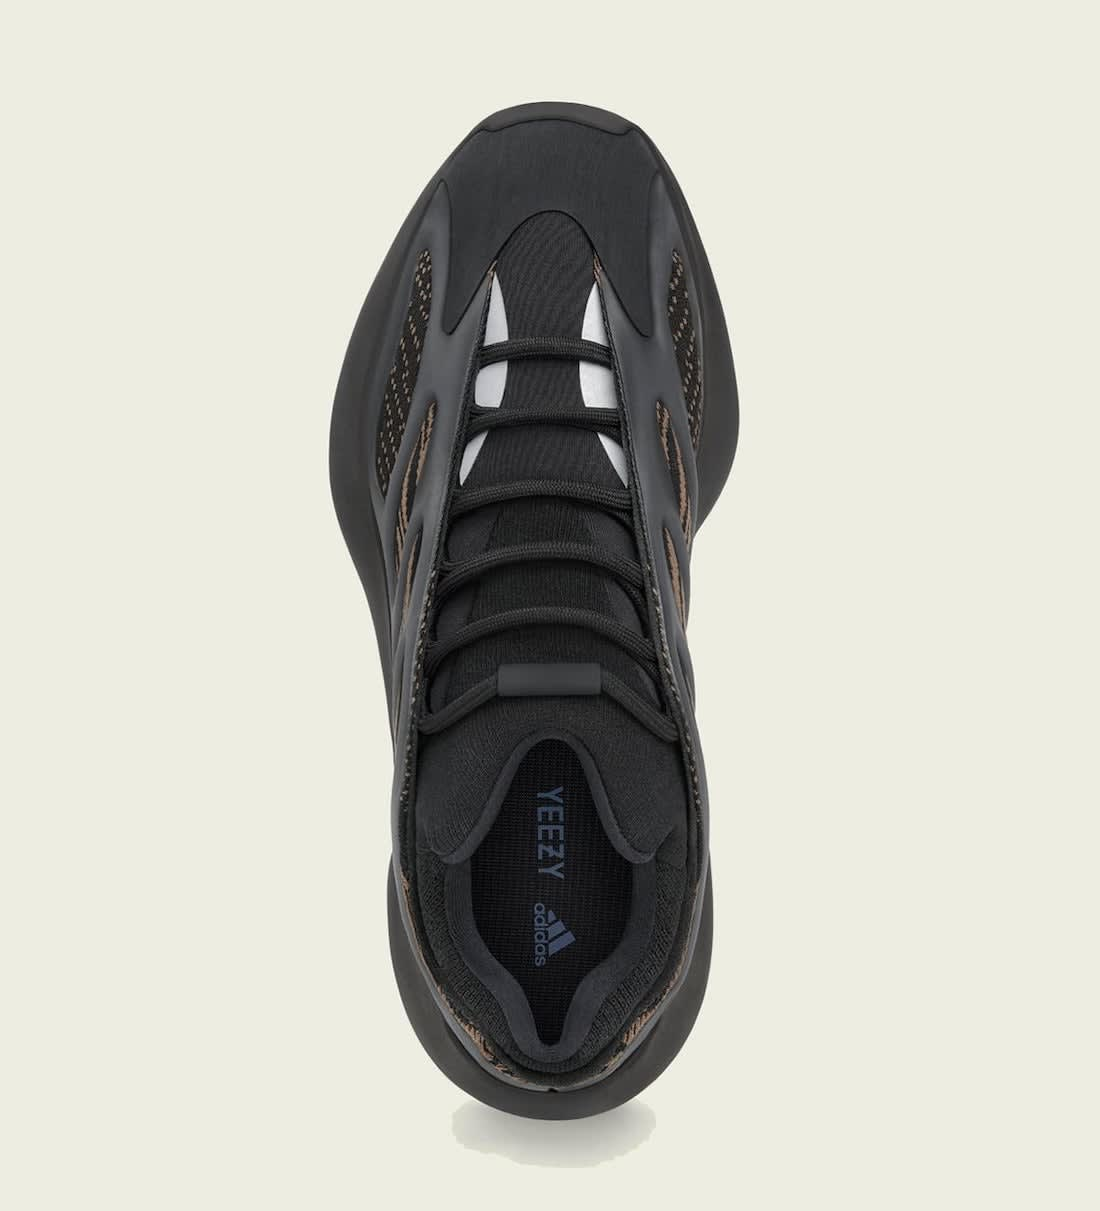 Adidas Yeezy 700 V3 Clay Brown Release Date GY0189 Top